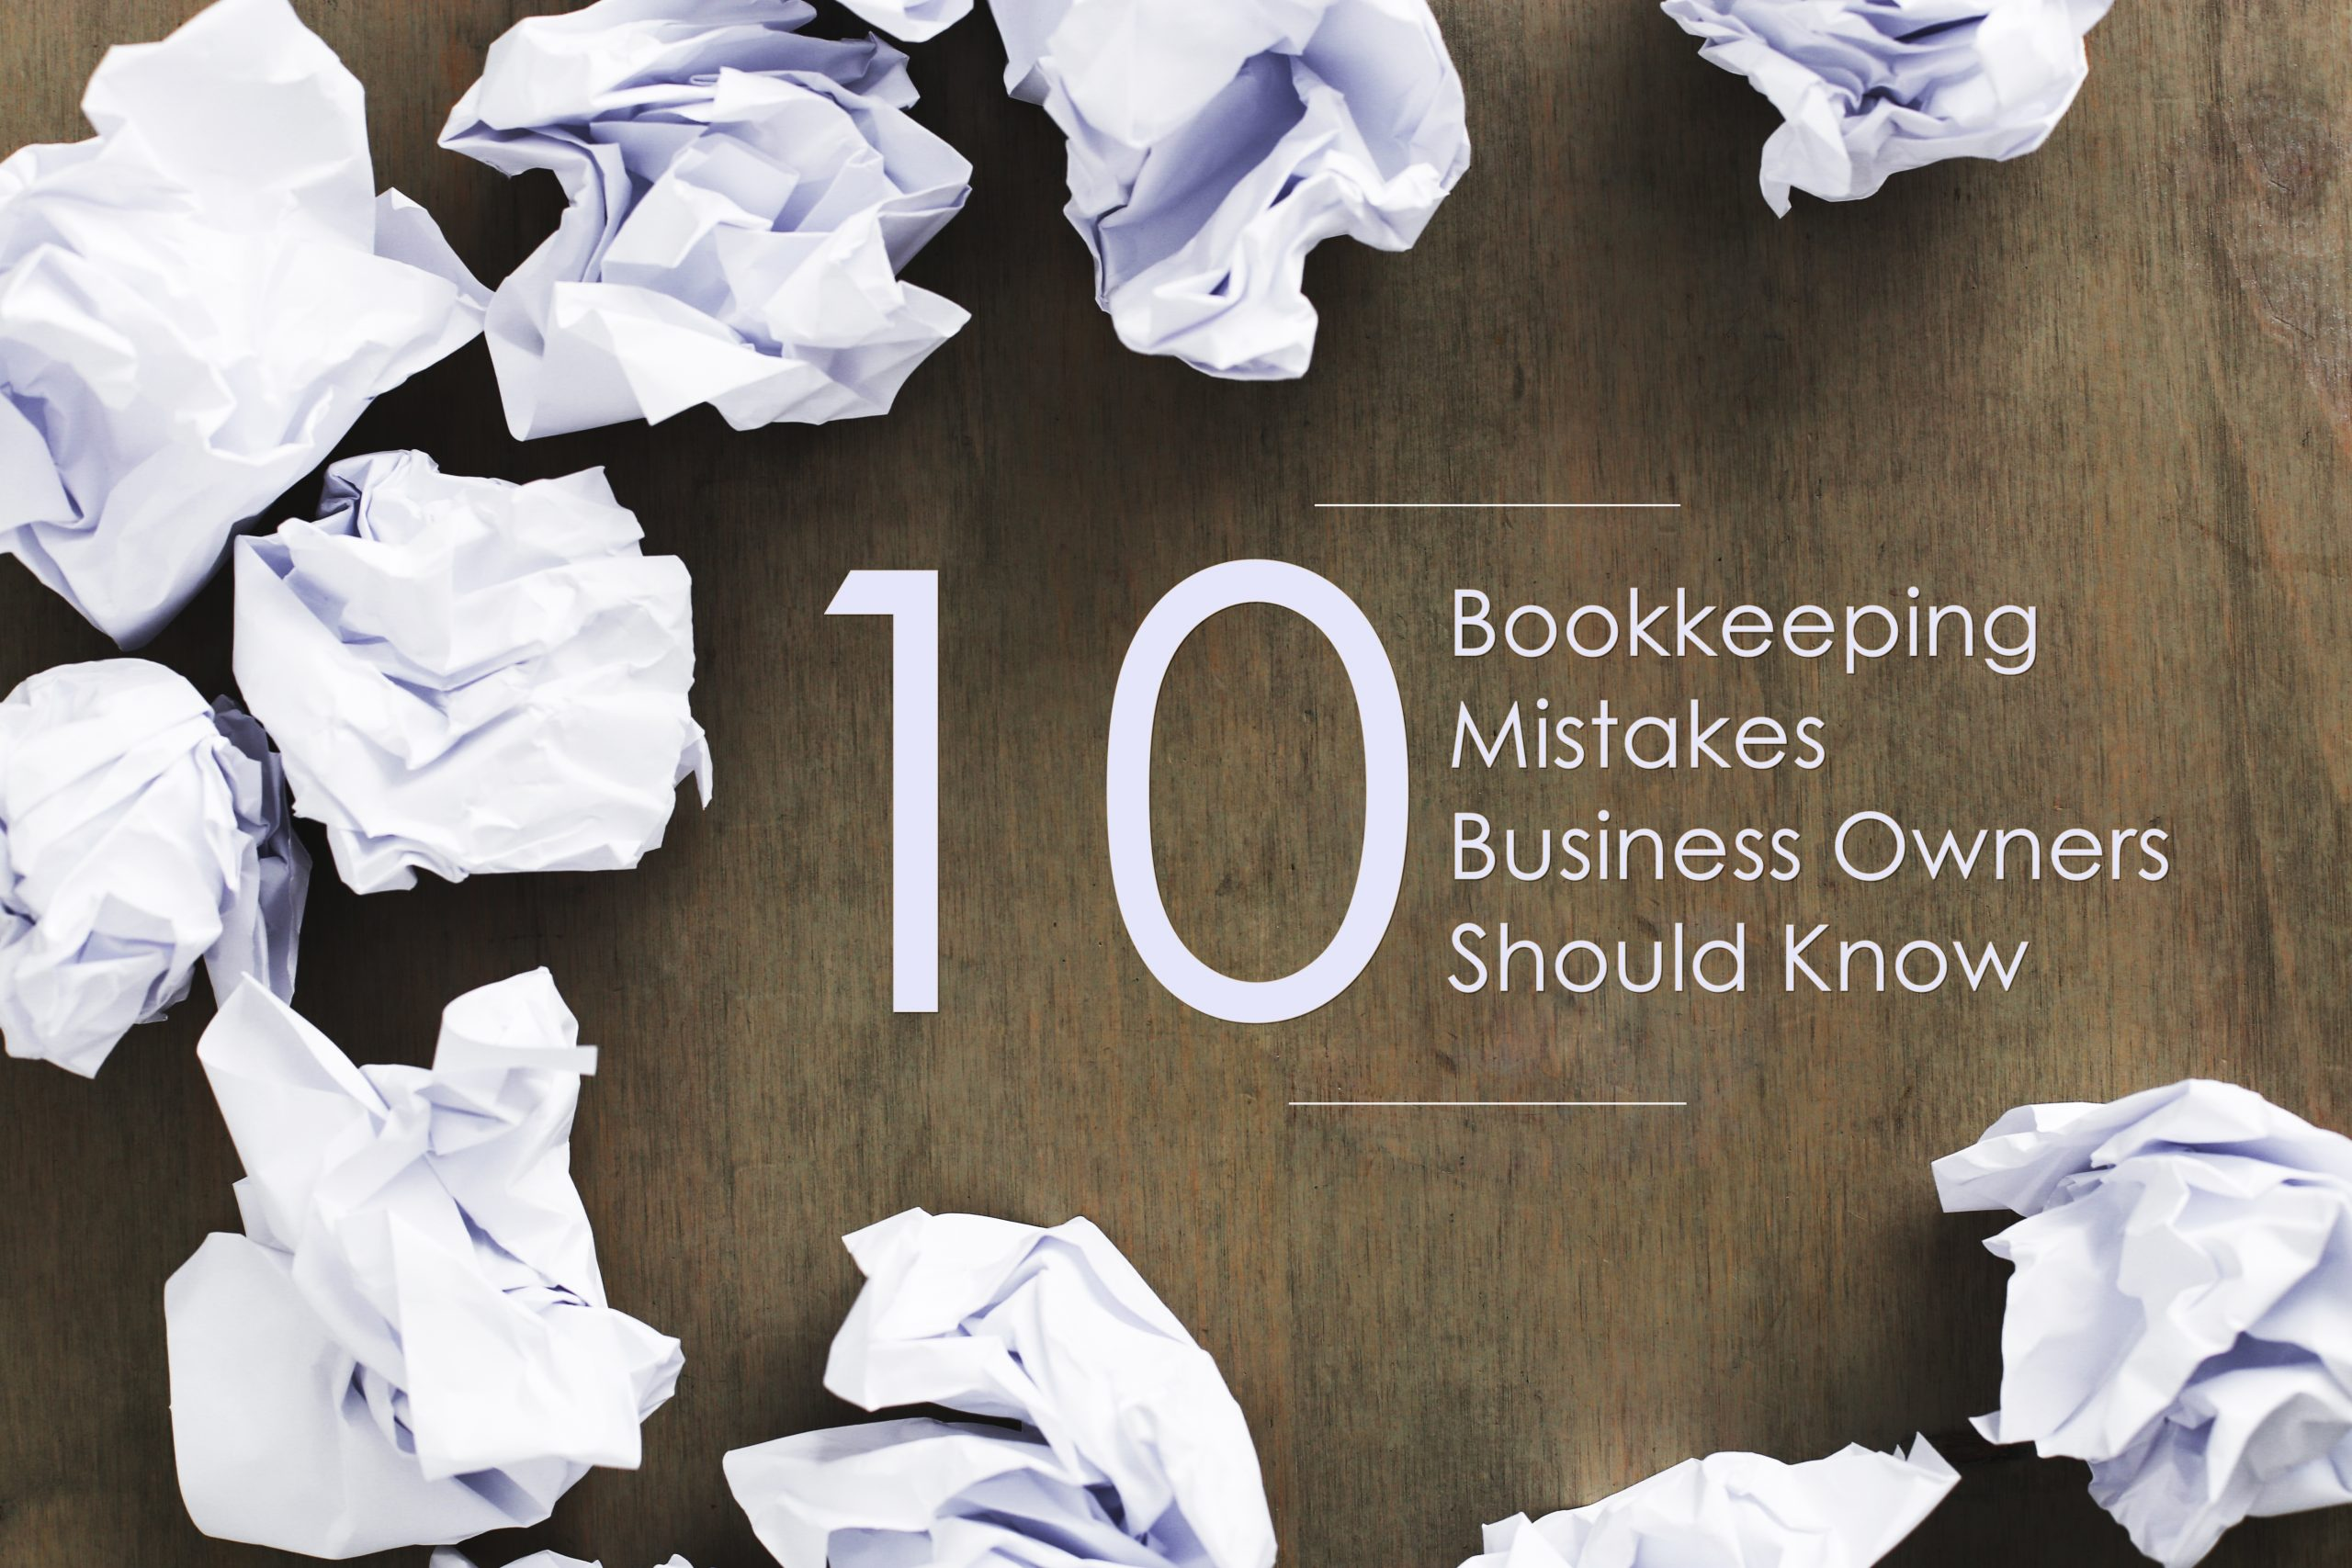 bookkeeping common mistakes